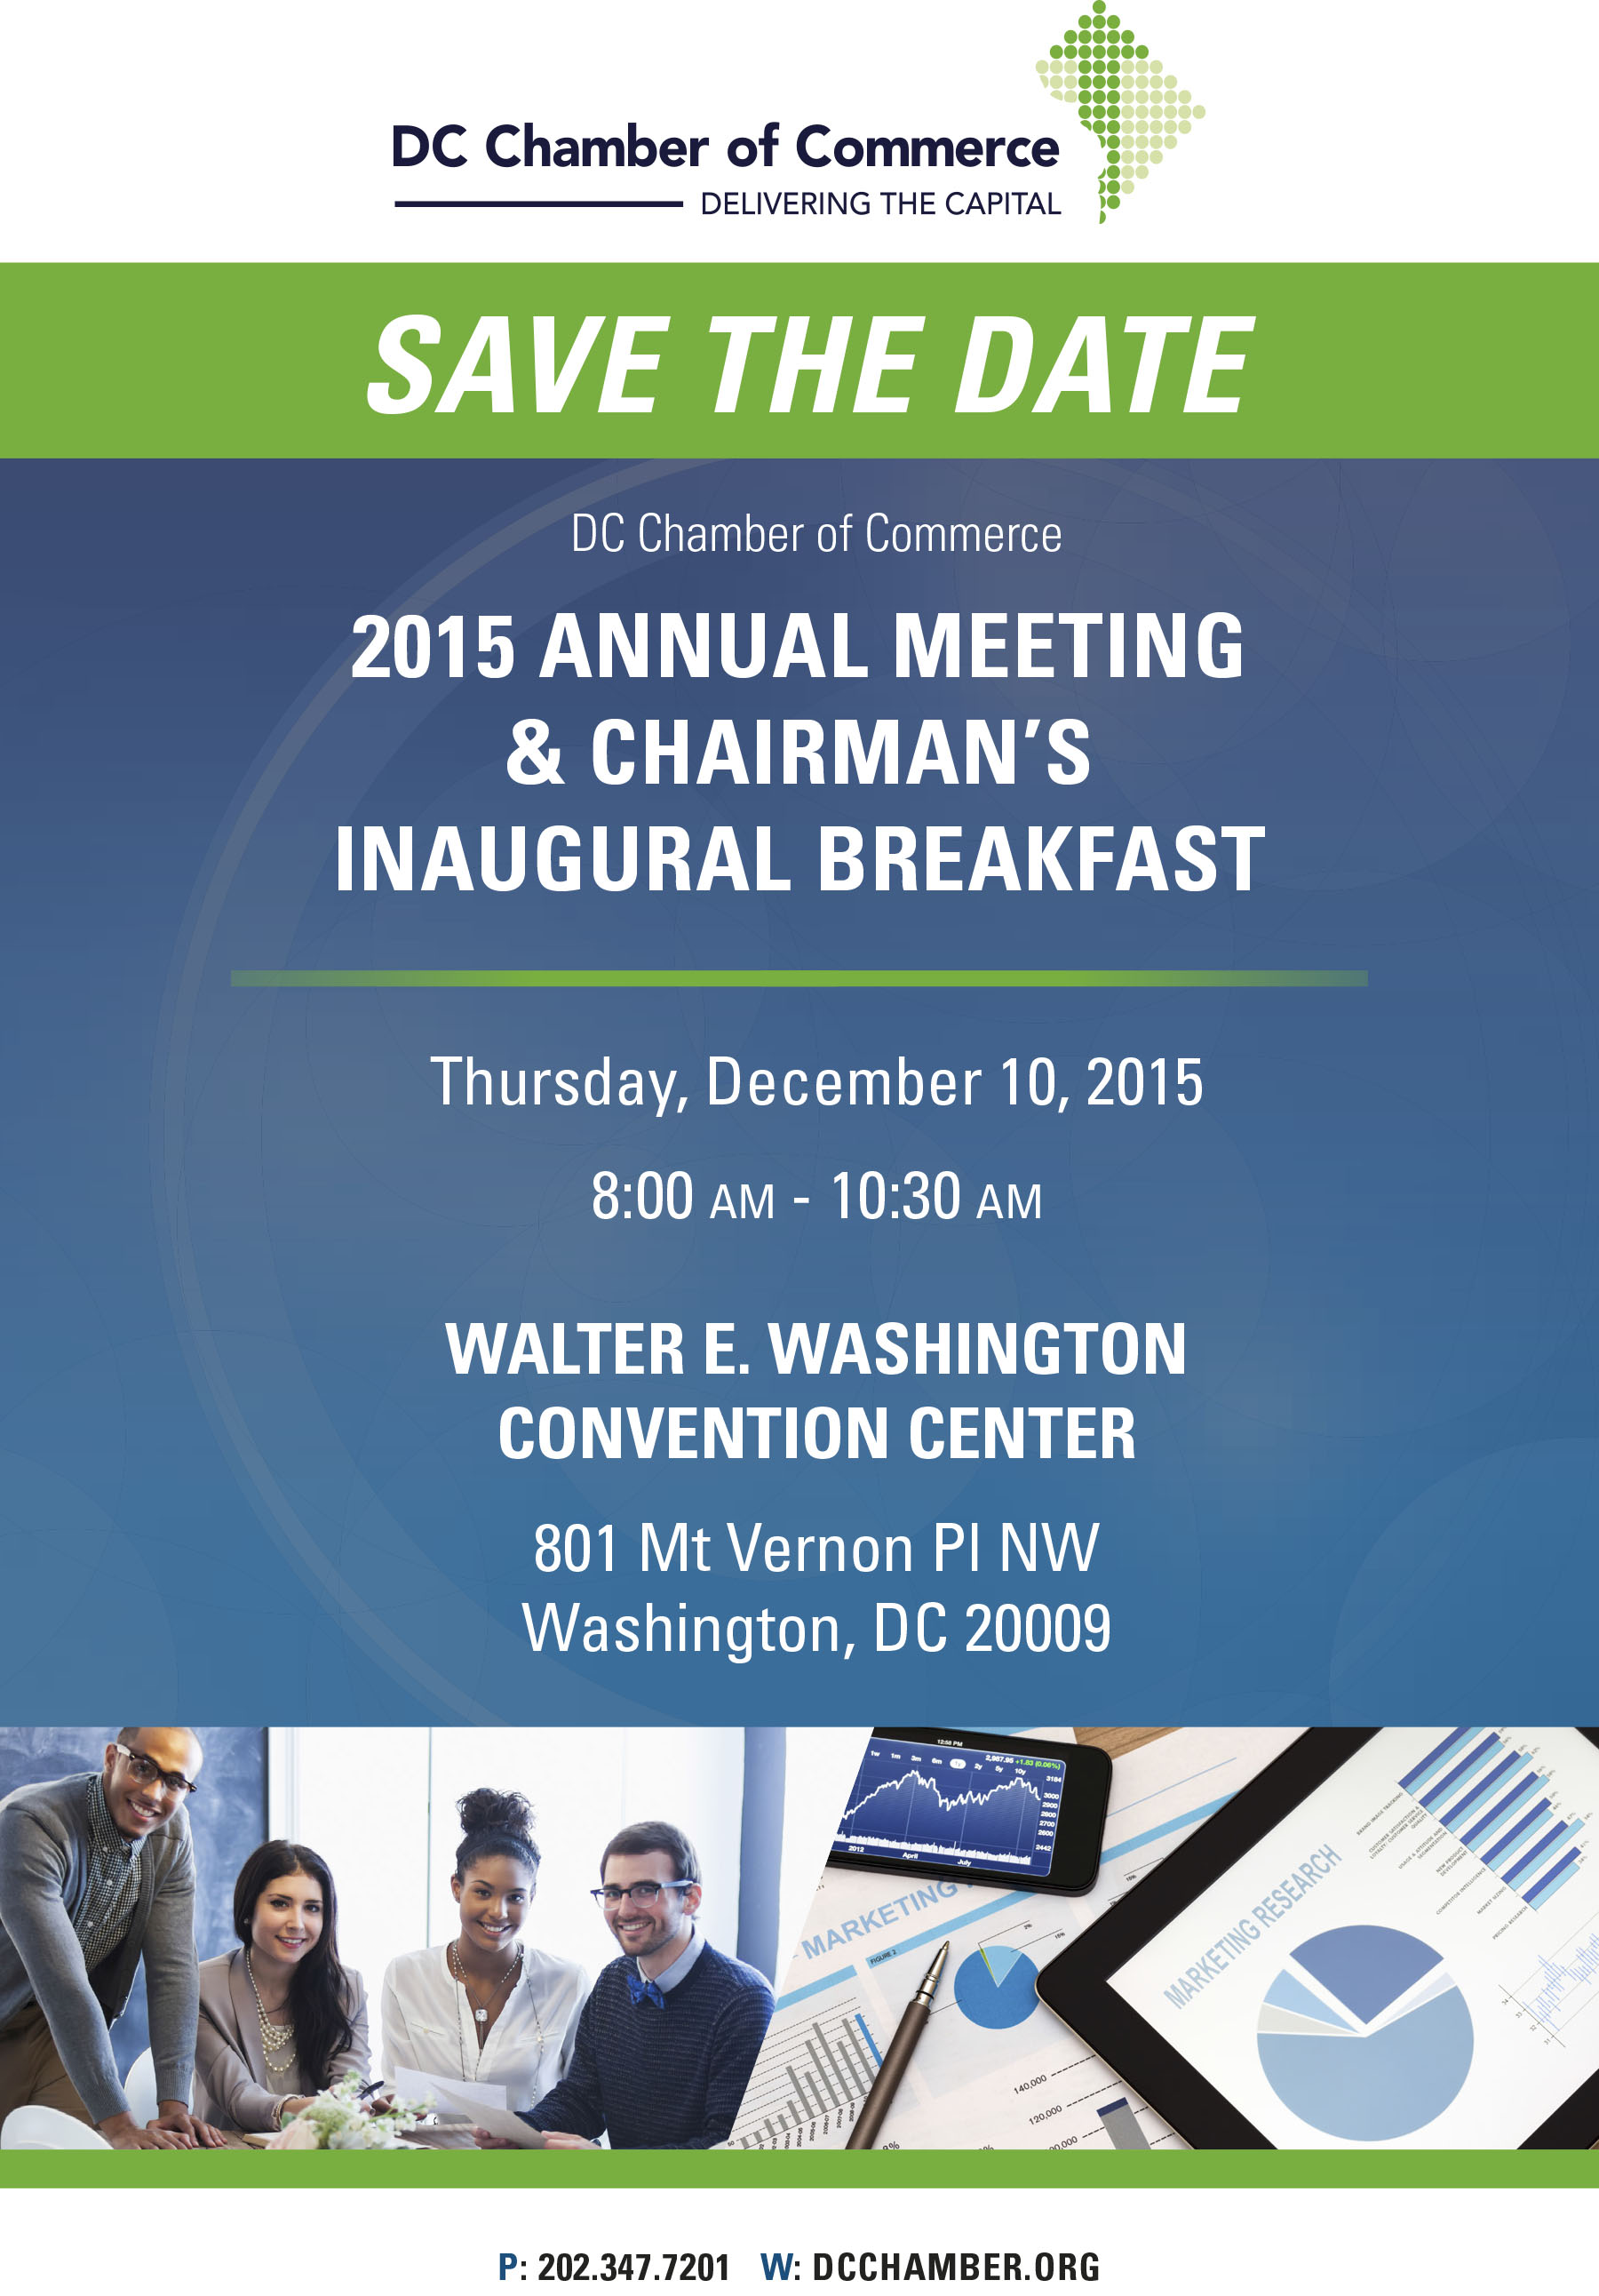 2015 Annual Meeting & Chairman's Inaugural Breakfast @ Walter E. Washington Convention Center | Washington | District of Columbia | United States